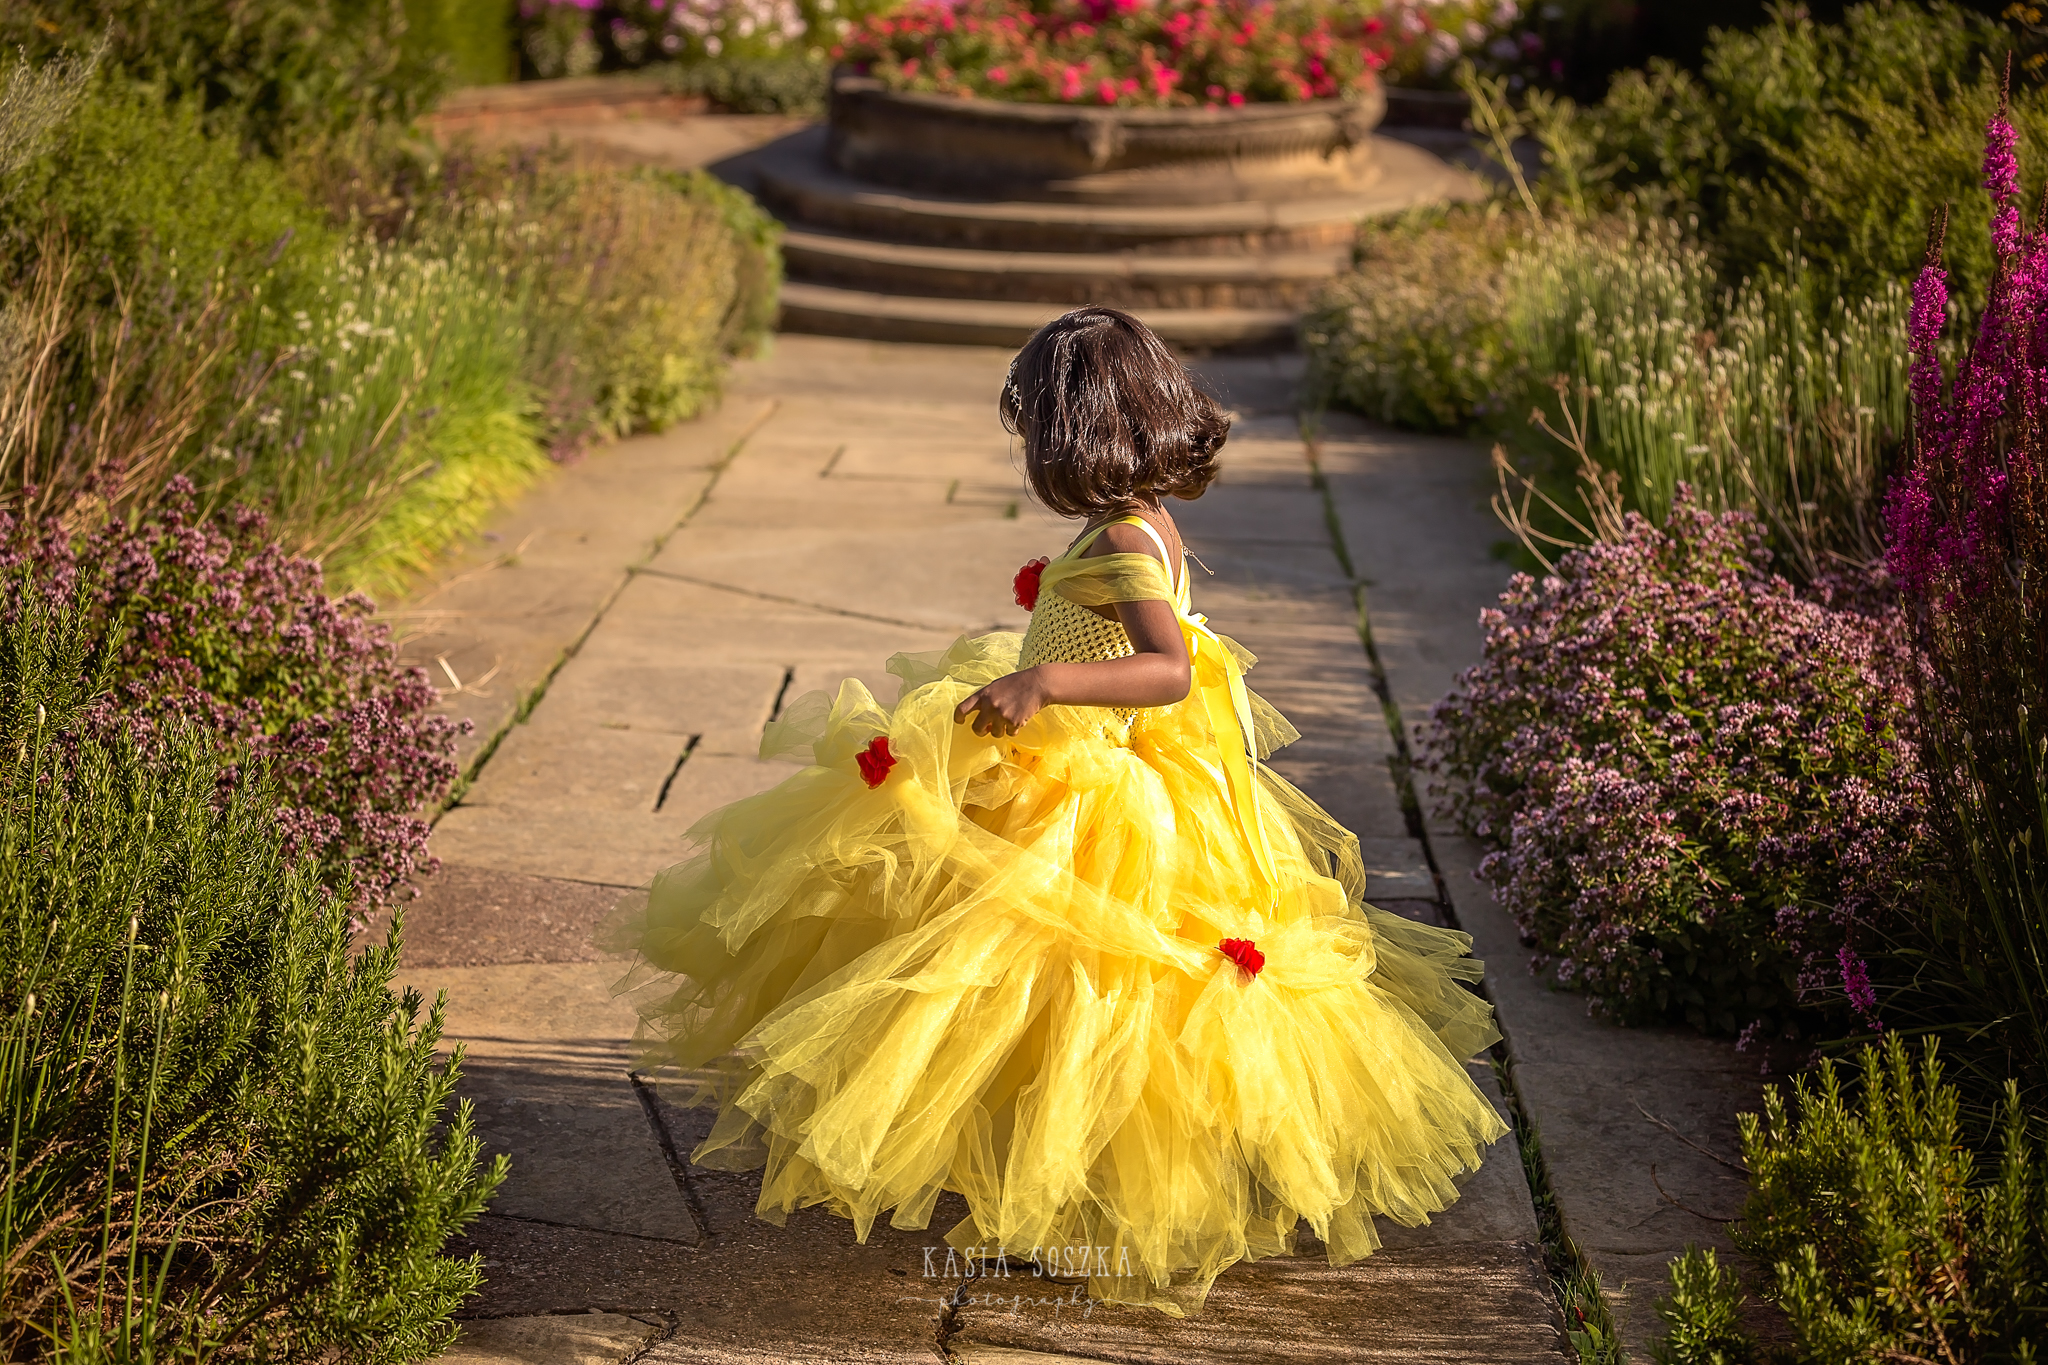 Child photography Leeds, child outdoor princess session Leeds, Yorkshire: beautiful little girl in a yellow princess dress dancing in a garden